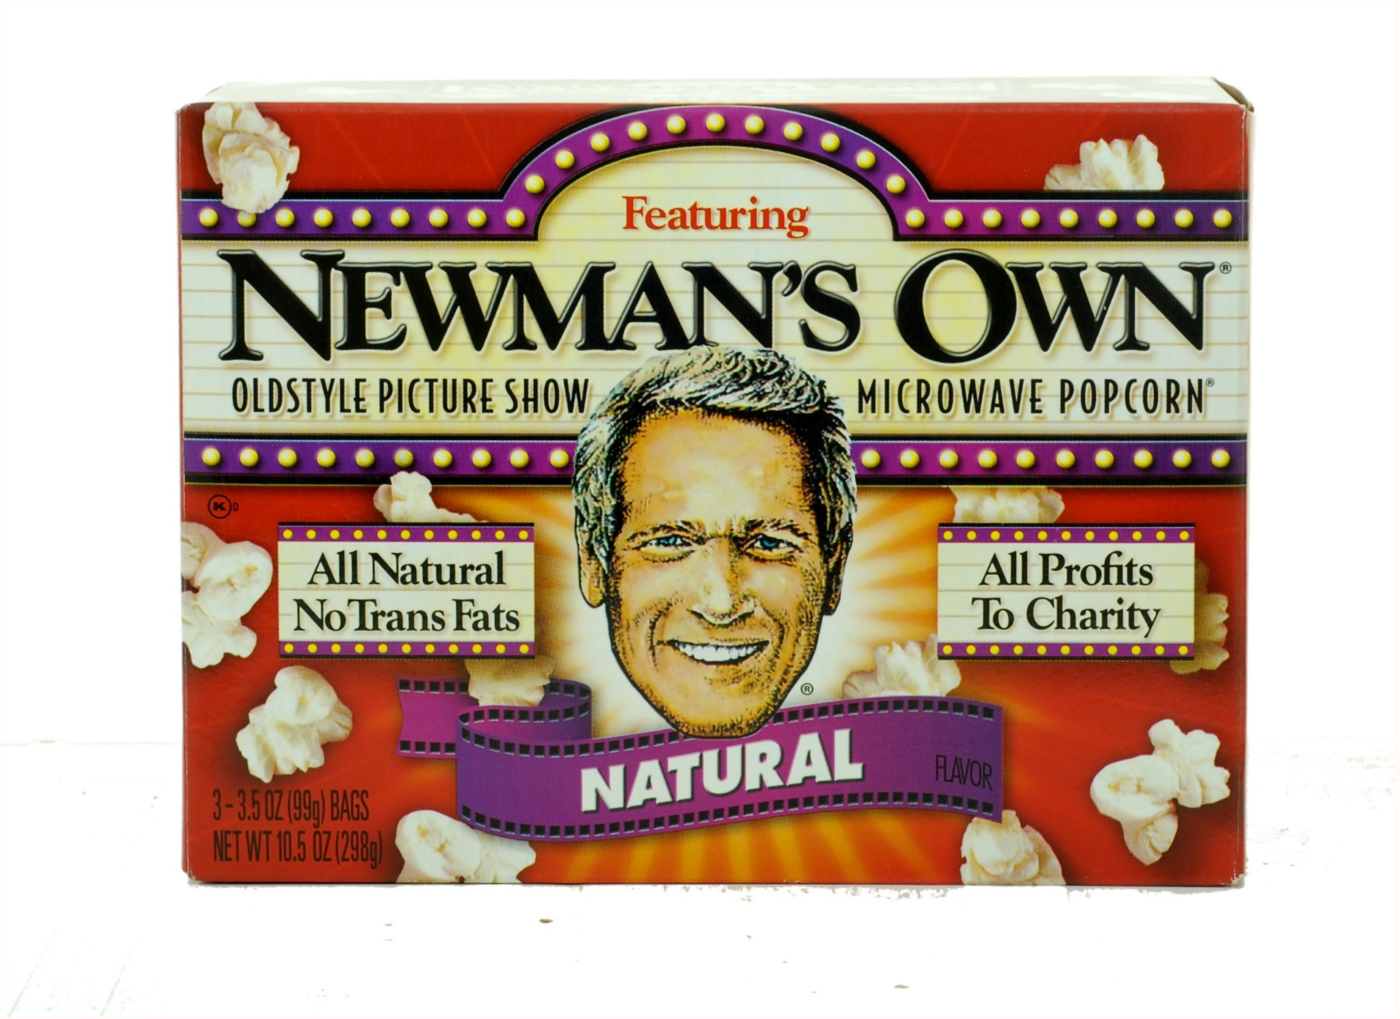 The packaging of Newman's Own's microwave popcorn